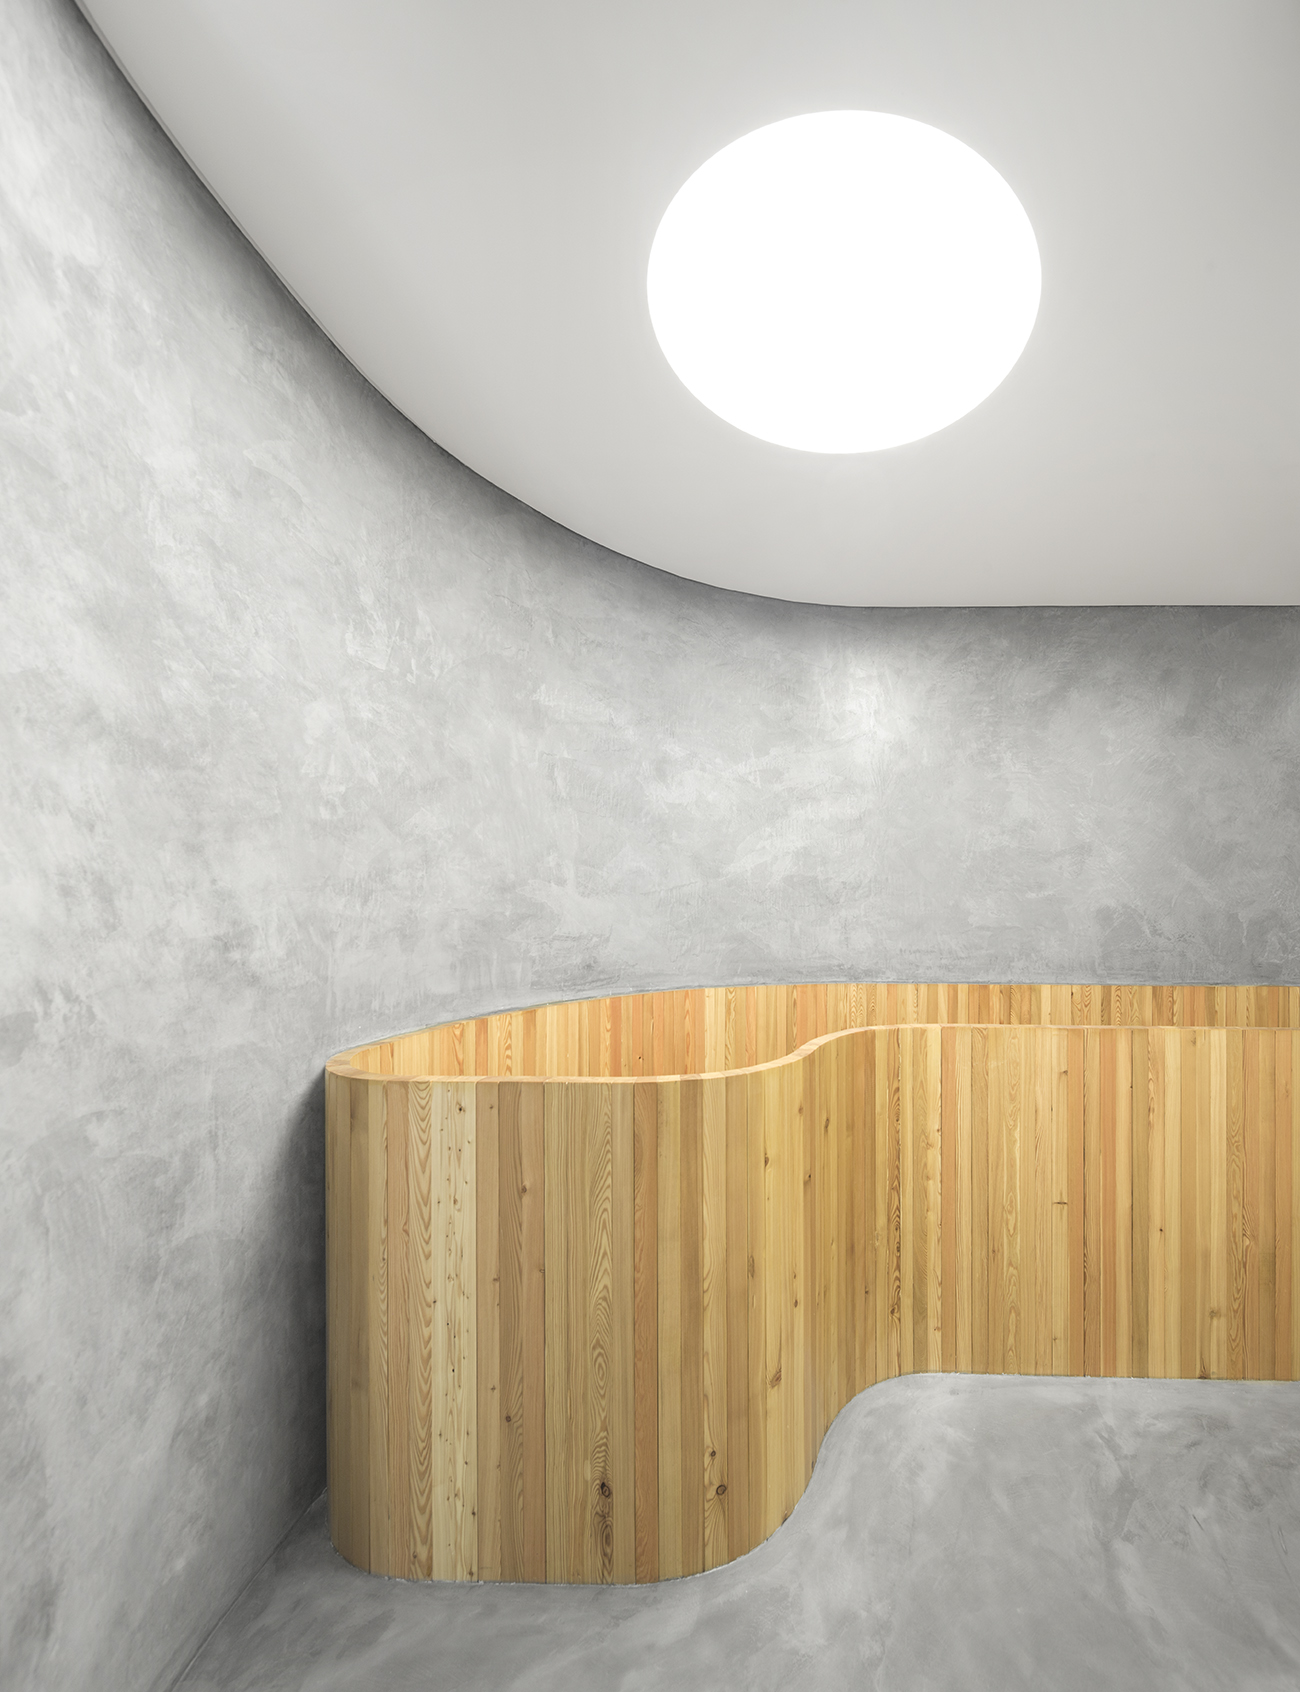 Wood stairs, glossy white walls mixed with textured concrete at DRDERM office by Atelier Central